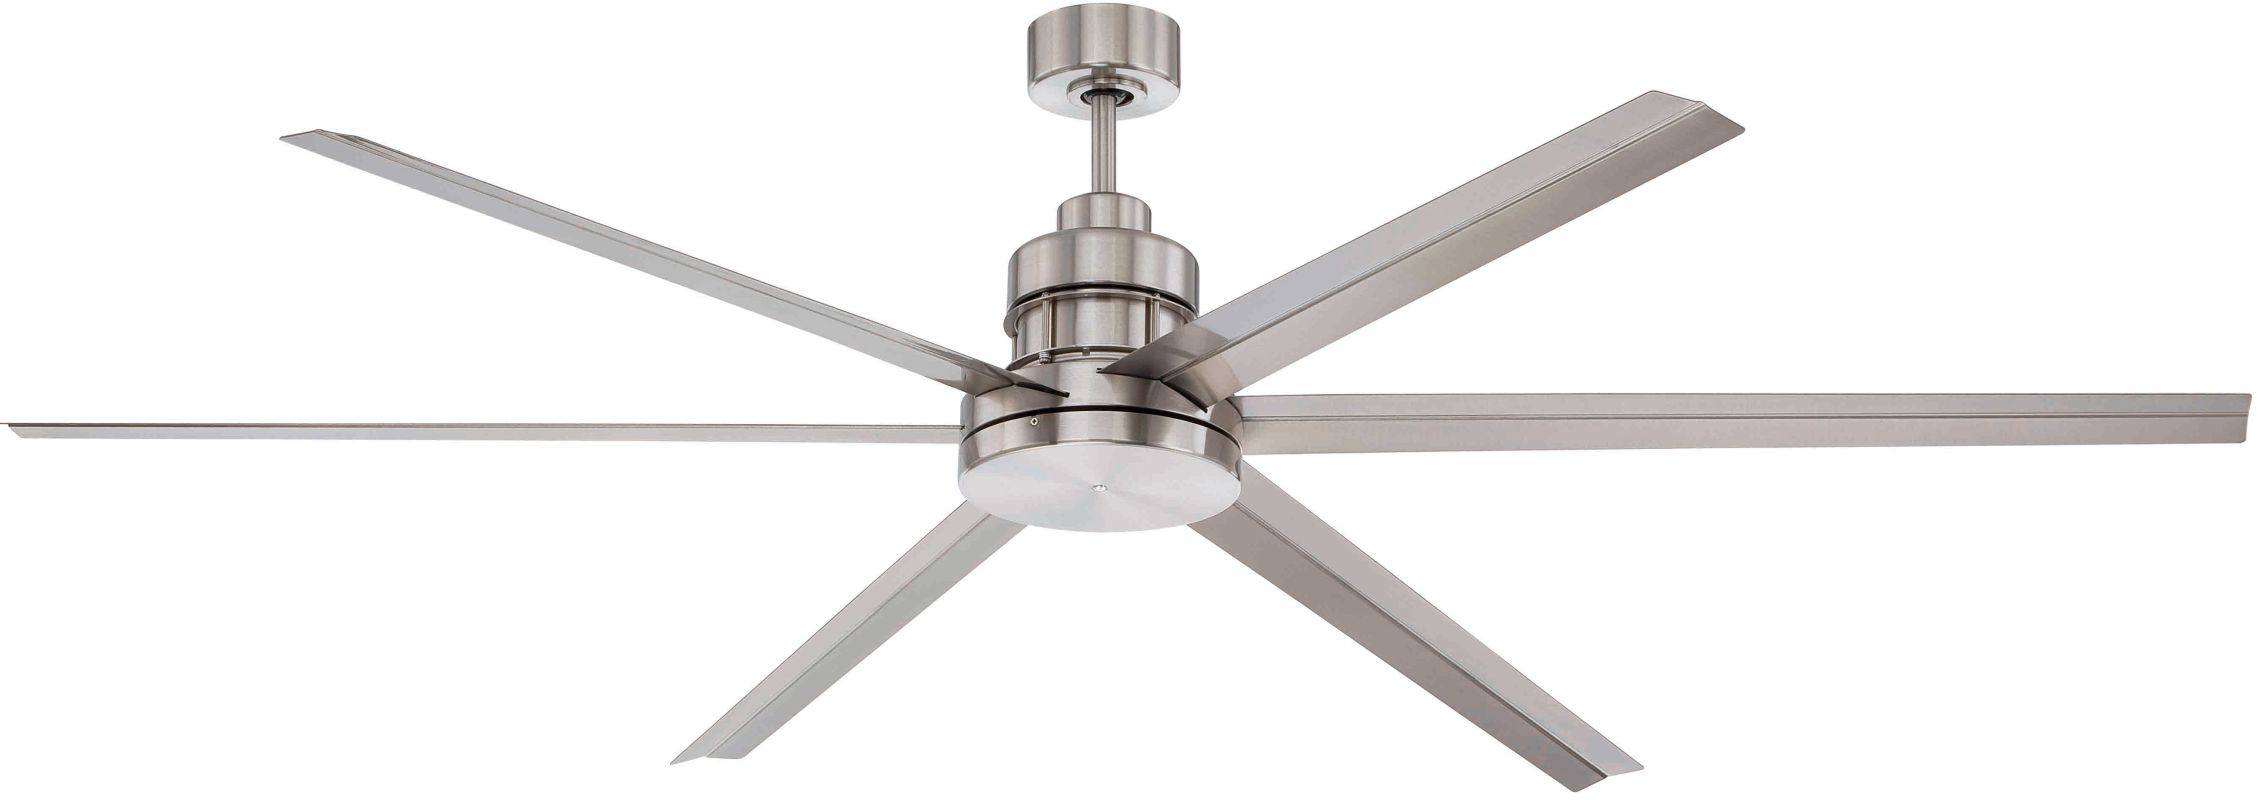 "Craftmade MND726 Mondo 72"" 6 Blade DC Motor Indoor Ceiling Fan -"